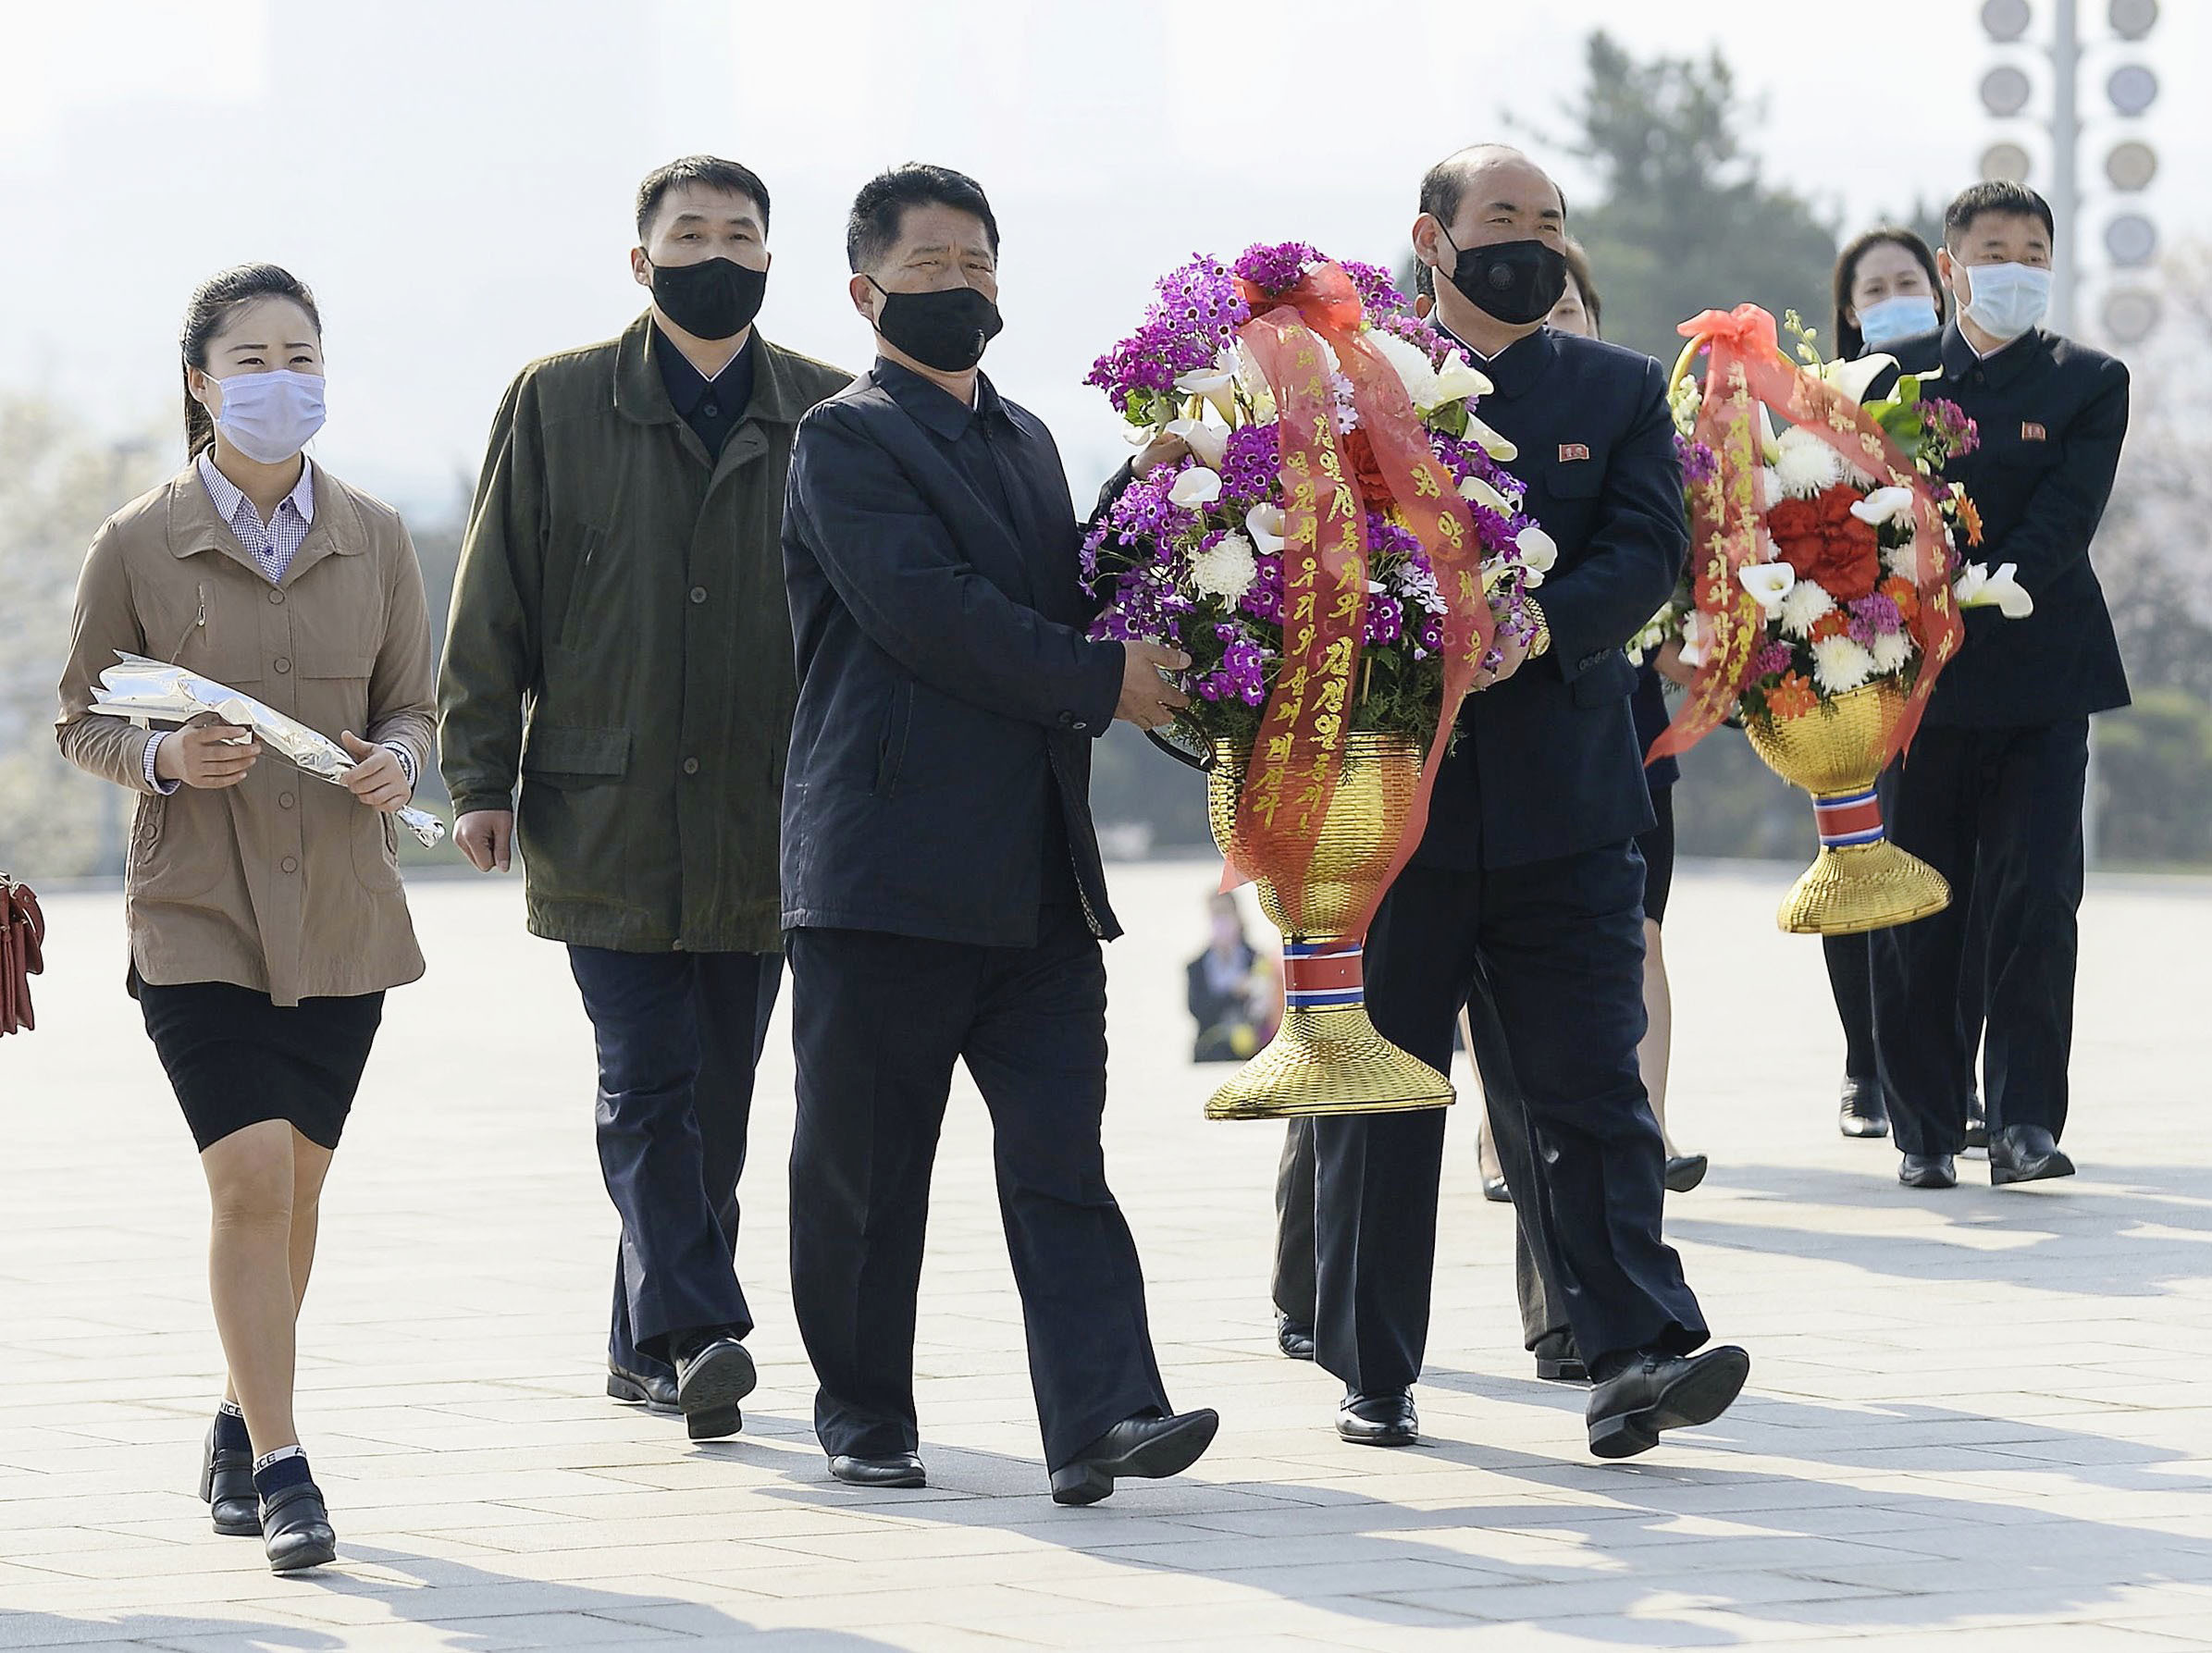 North Koreans wearing masks visit offer flowers on the 108th anniversary of the birth Kim Il Sung. Source: AAP